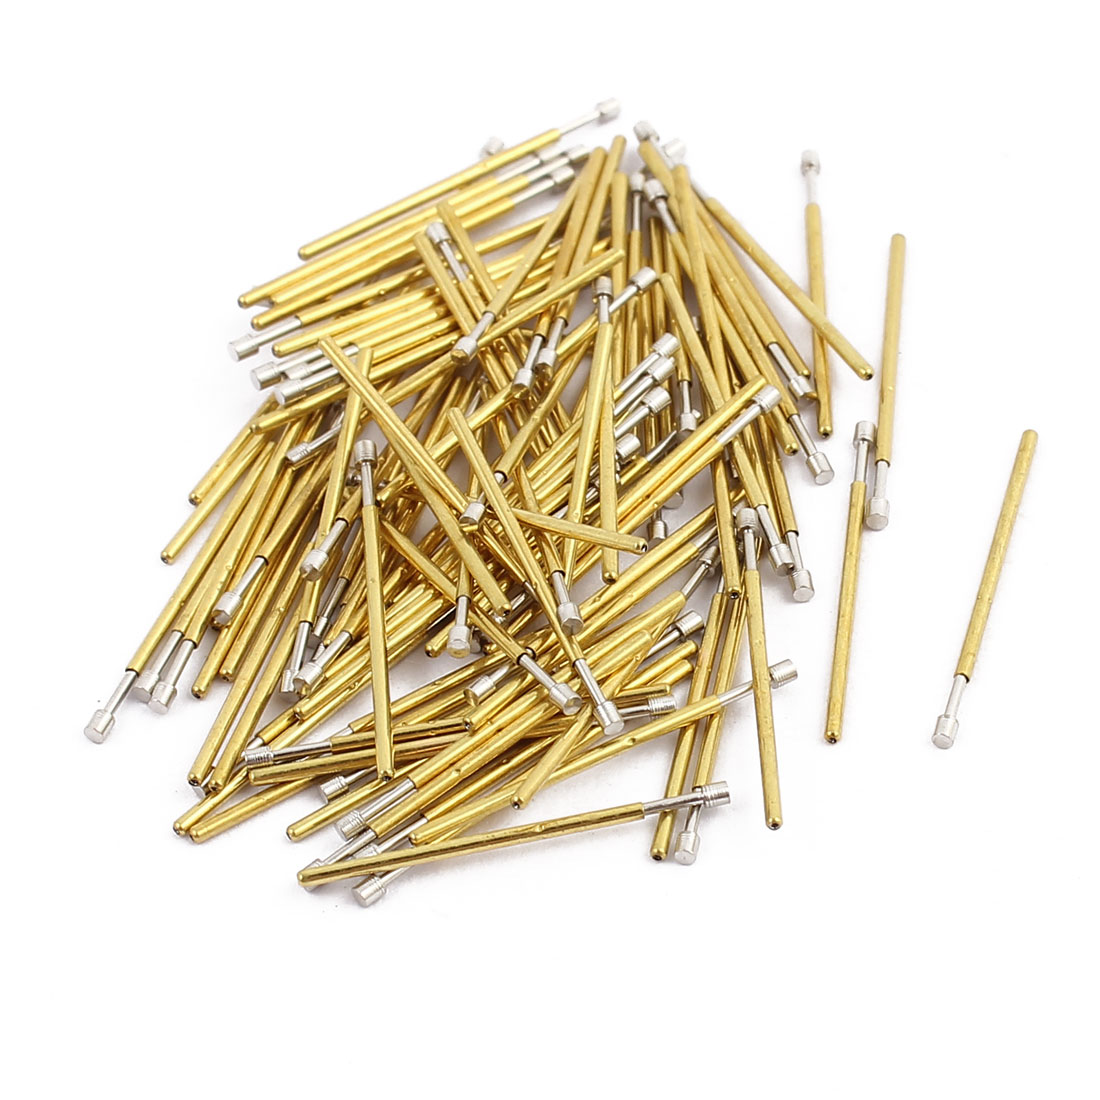 100pcs P50-G2 0.68mm Dia 16.5mm Length Metal Spring Pressure Test Probe Needle